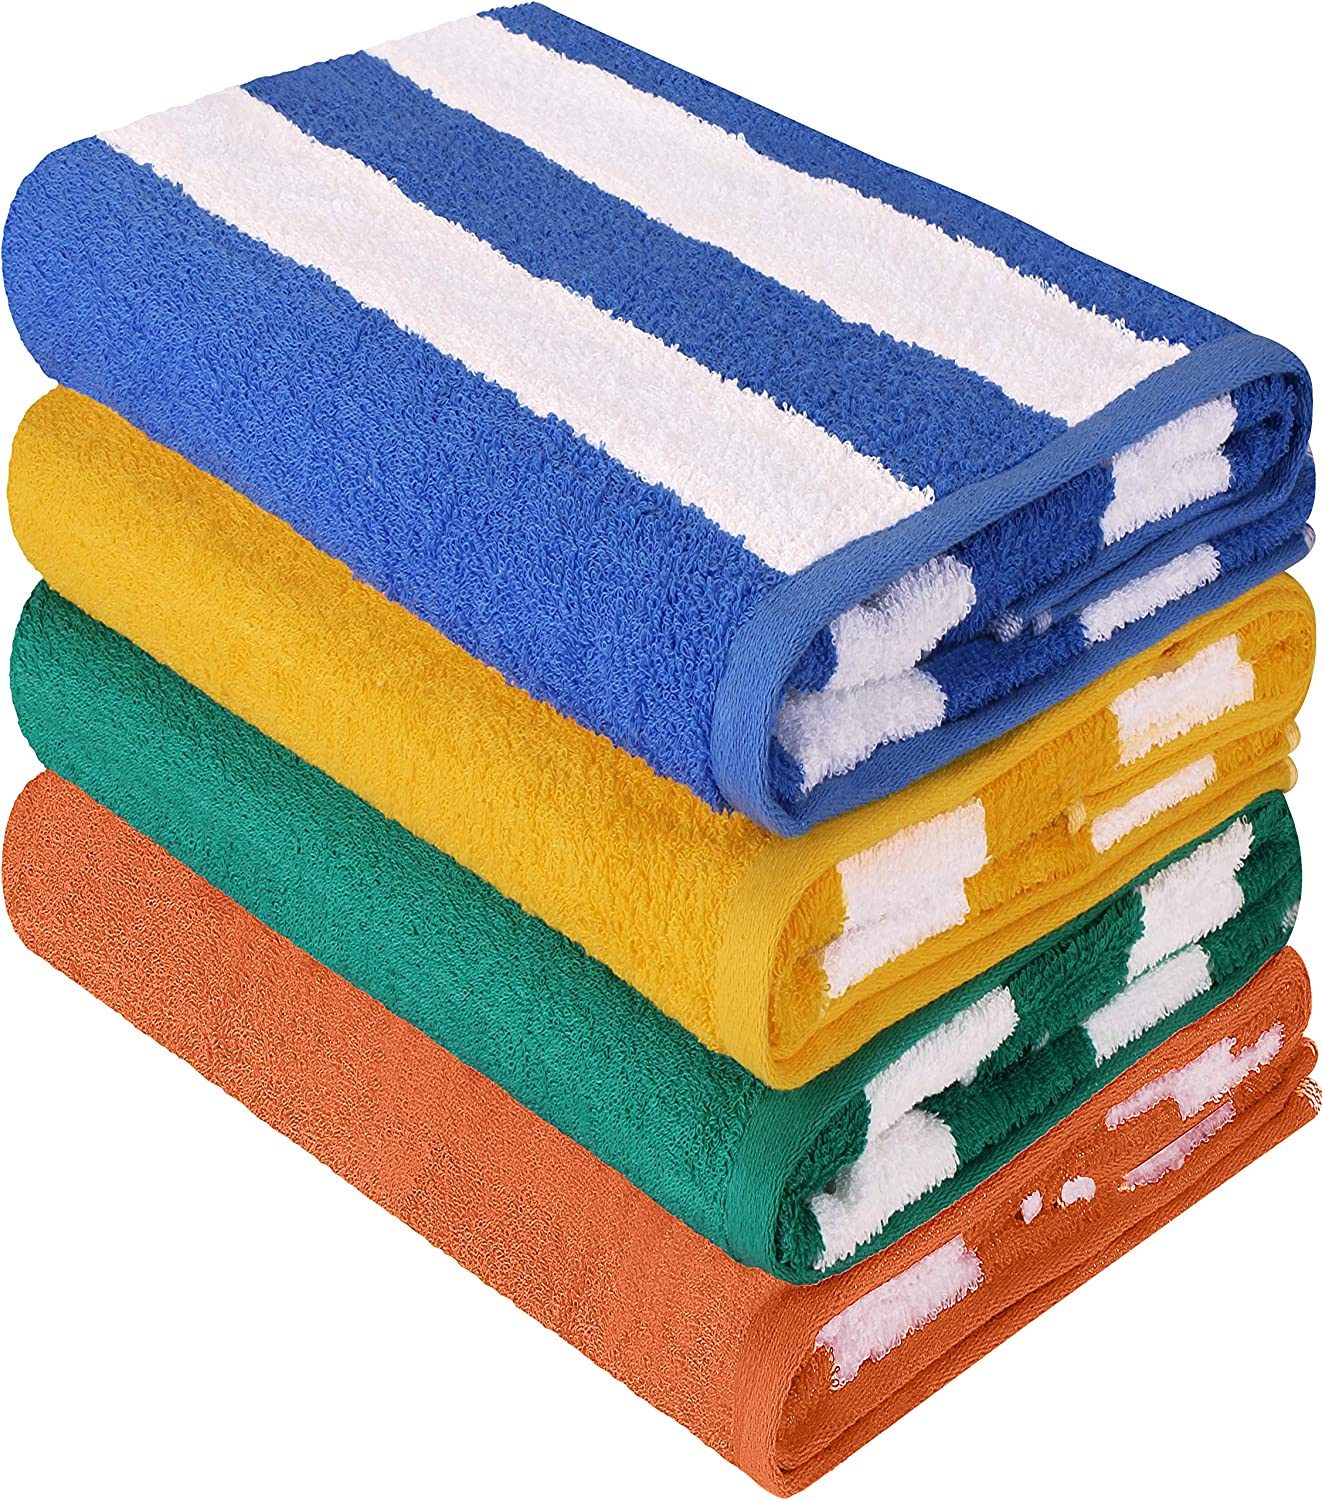 Utopia Towels Cabana Stripe Beach Towel (30 x 60 Inches) - 100% Ring Spun Cotton Large Pool Towels